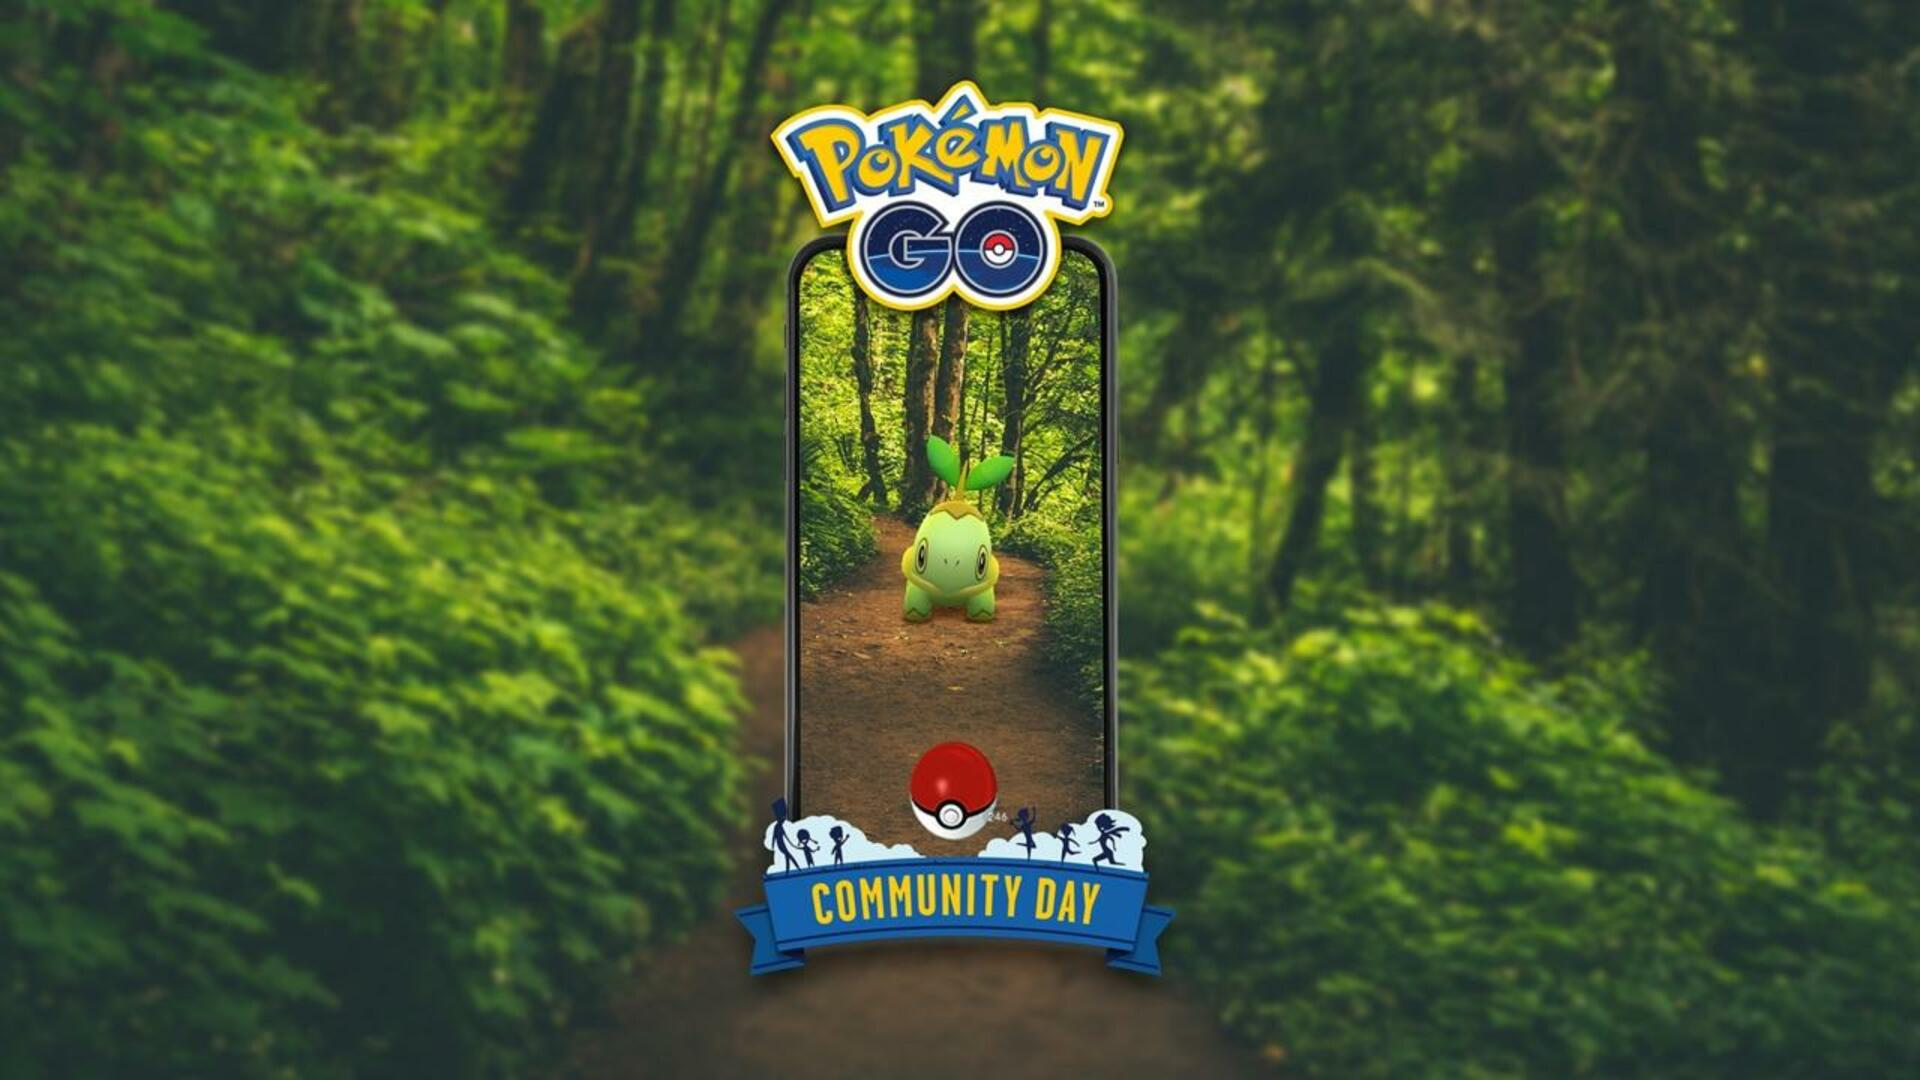 Pokemon Go September 2019 Community Day | USgamer